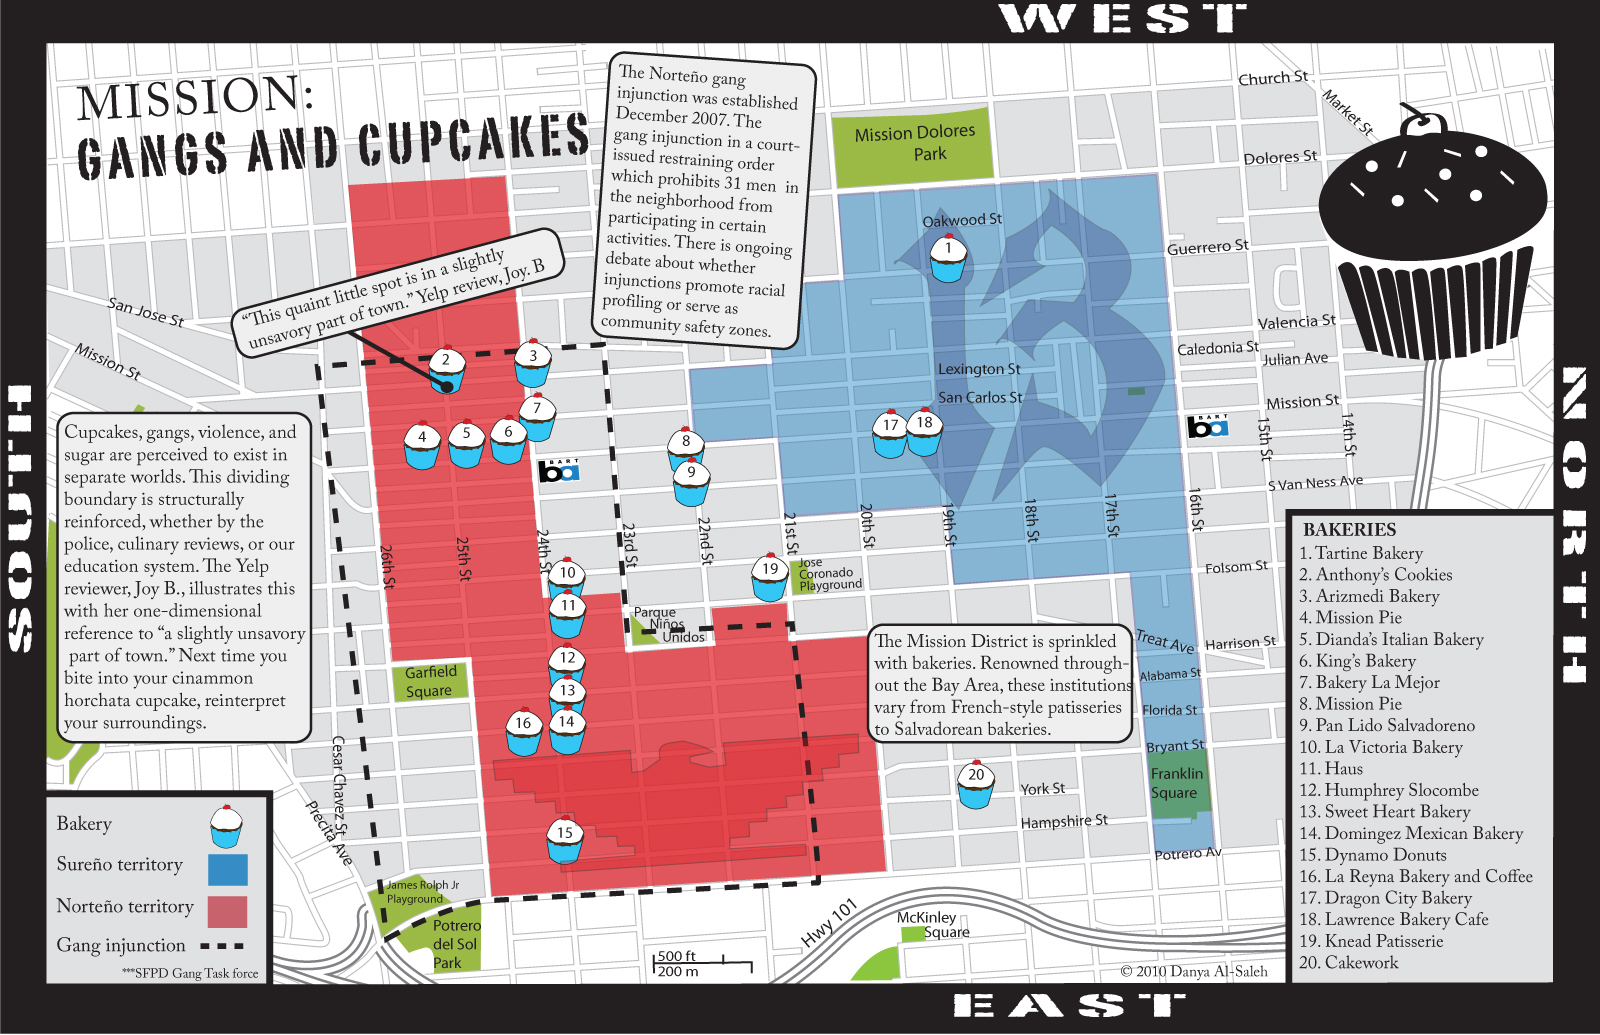 Gangs and Cupcakes - Mission Local on gang signal, south central la gang map, chicago street gang map, american gangs map, usa gang map, gang goals, gang injunction copy of court, portland gang map, gta gang attack map, gang injunctions in los angeles, gang maps of washington, la street gangs map, gang graffiti, gang statistics, los angeles gang map, miami gang map, google la gang map, oakland gang map, watts gang map, toledo gang map,